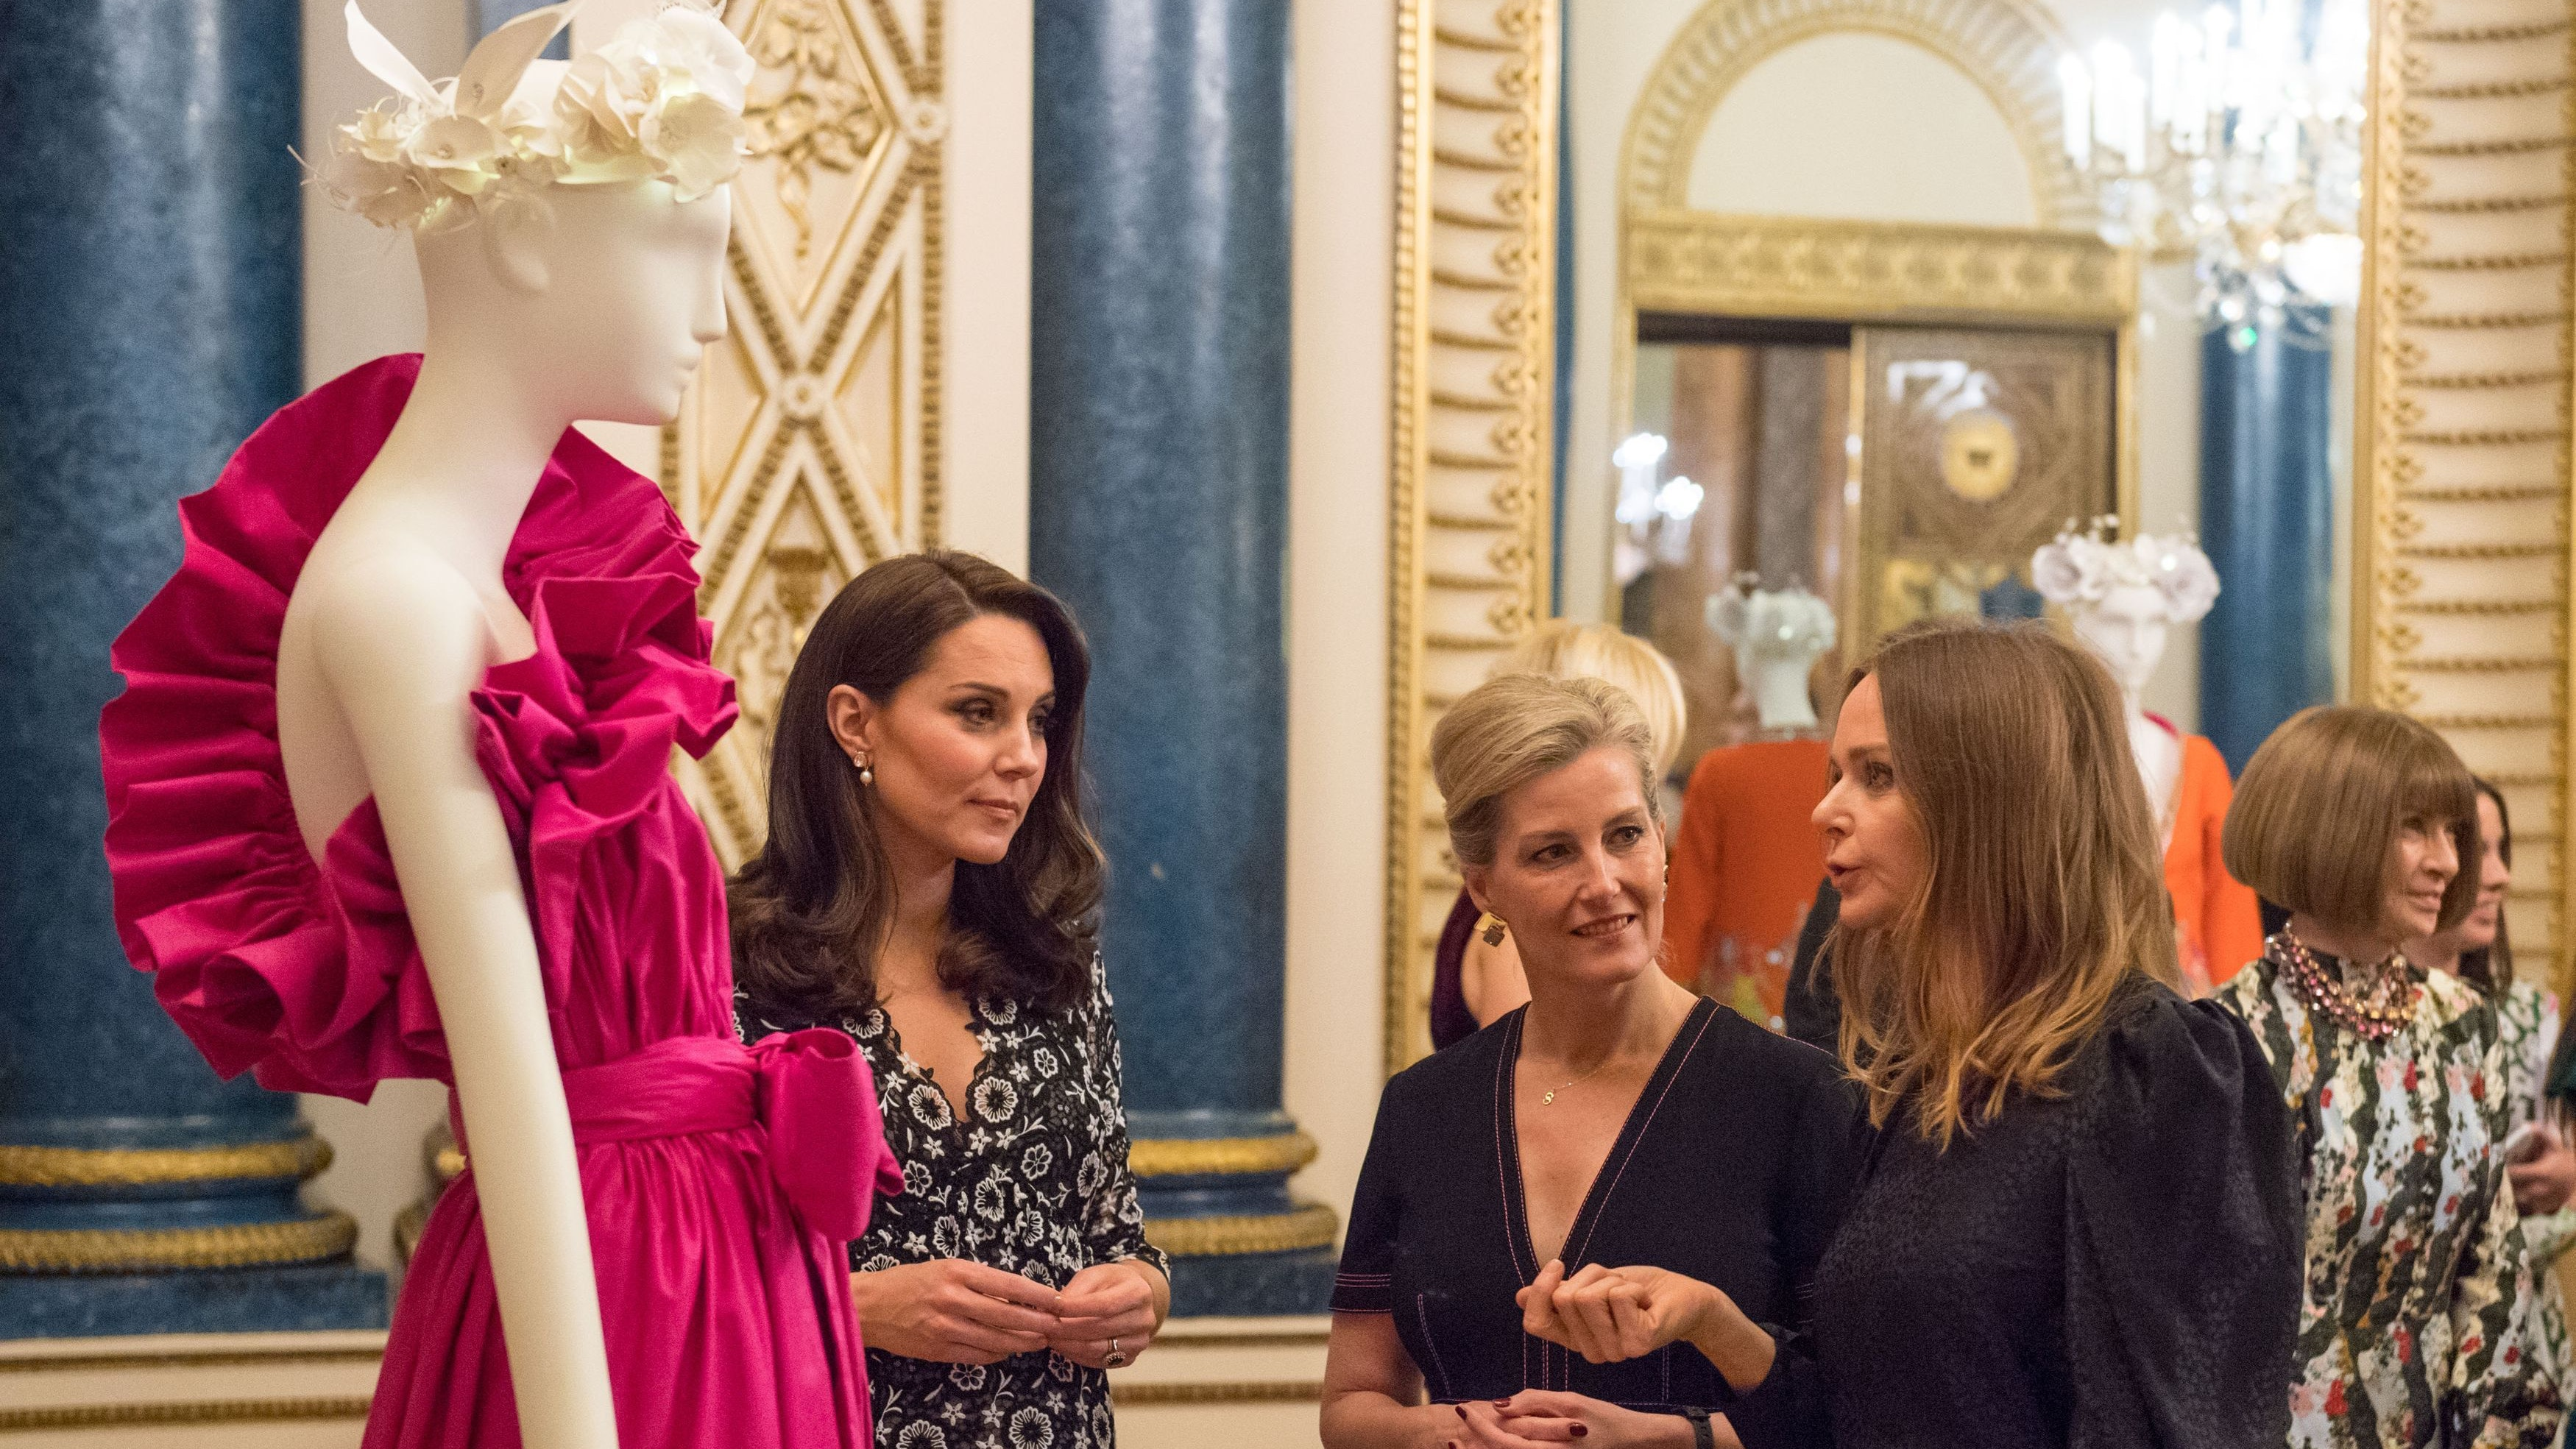 Here's What Kate Middleton Wore to Meet Anna Wintour